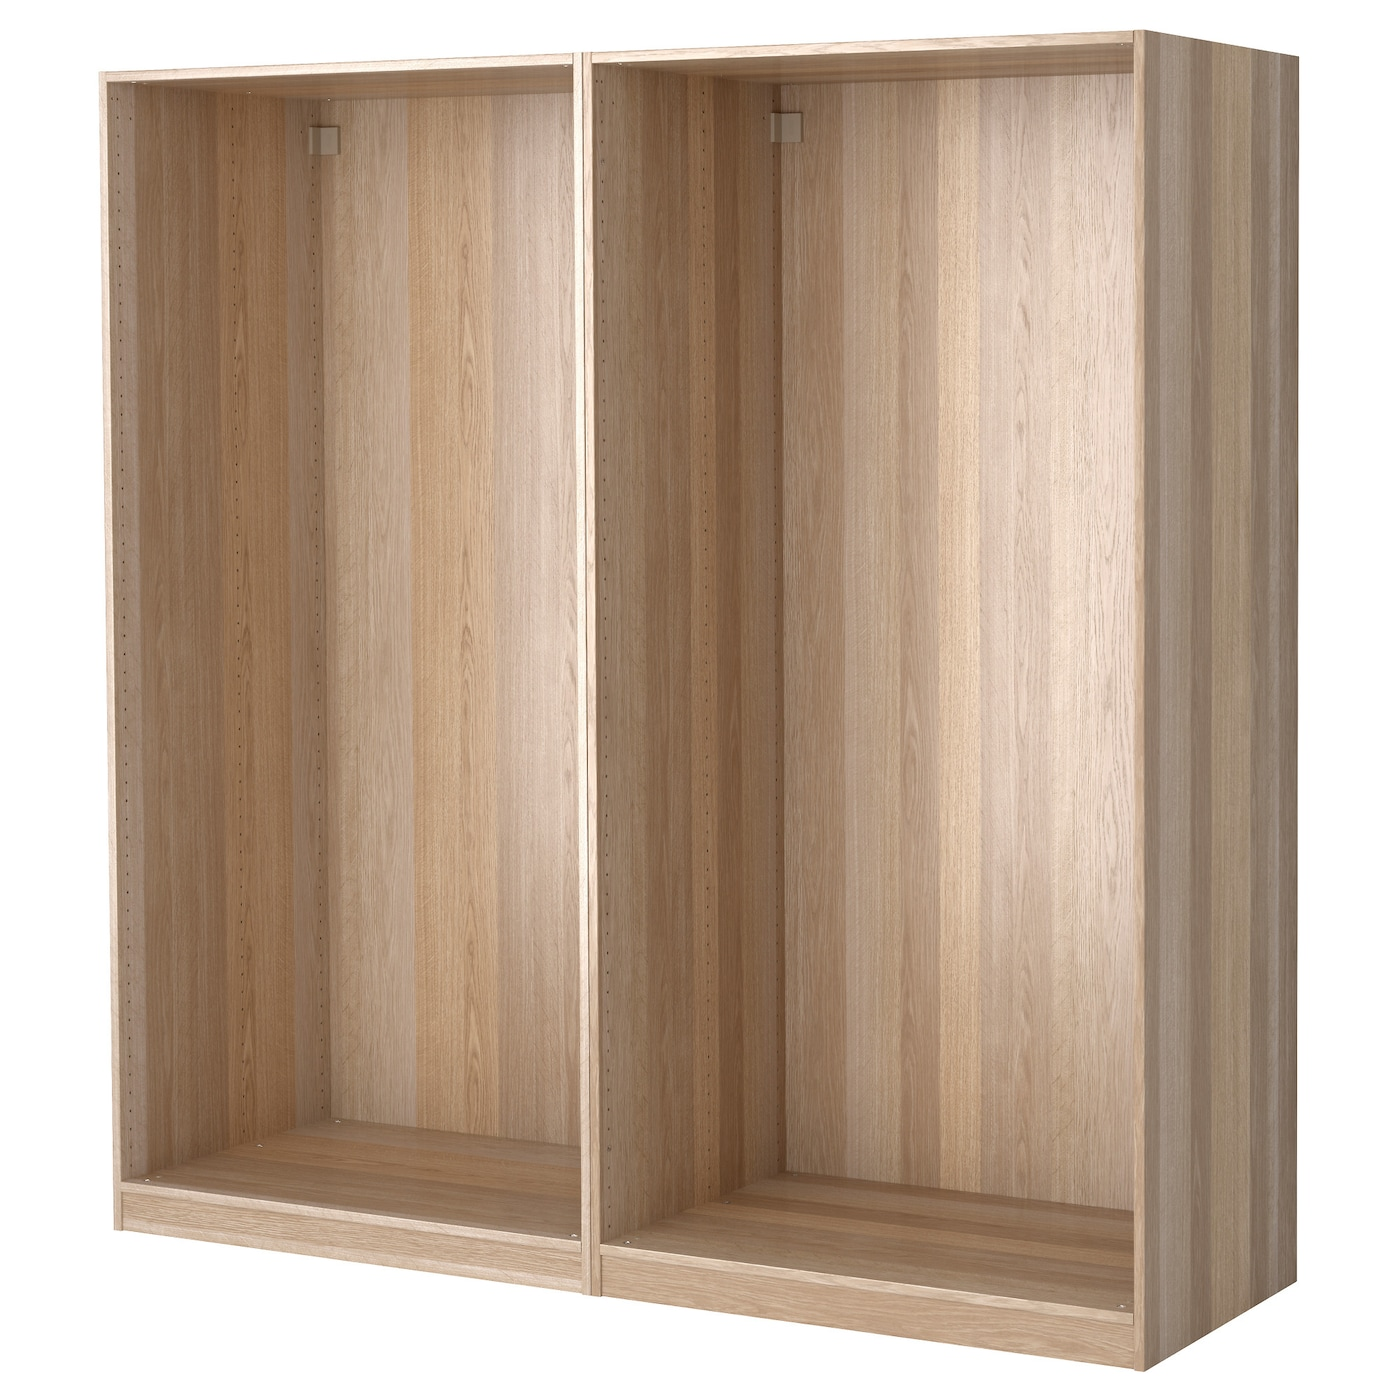 Pax 2 wardrobe frames white stained oak 200x58x201 cm ikea - Ikea armoire porte coulissante ...